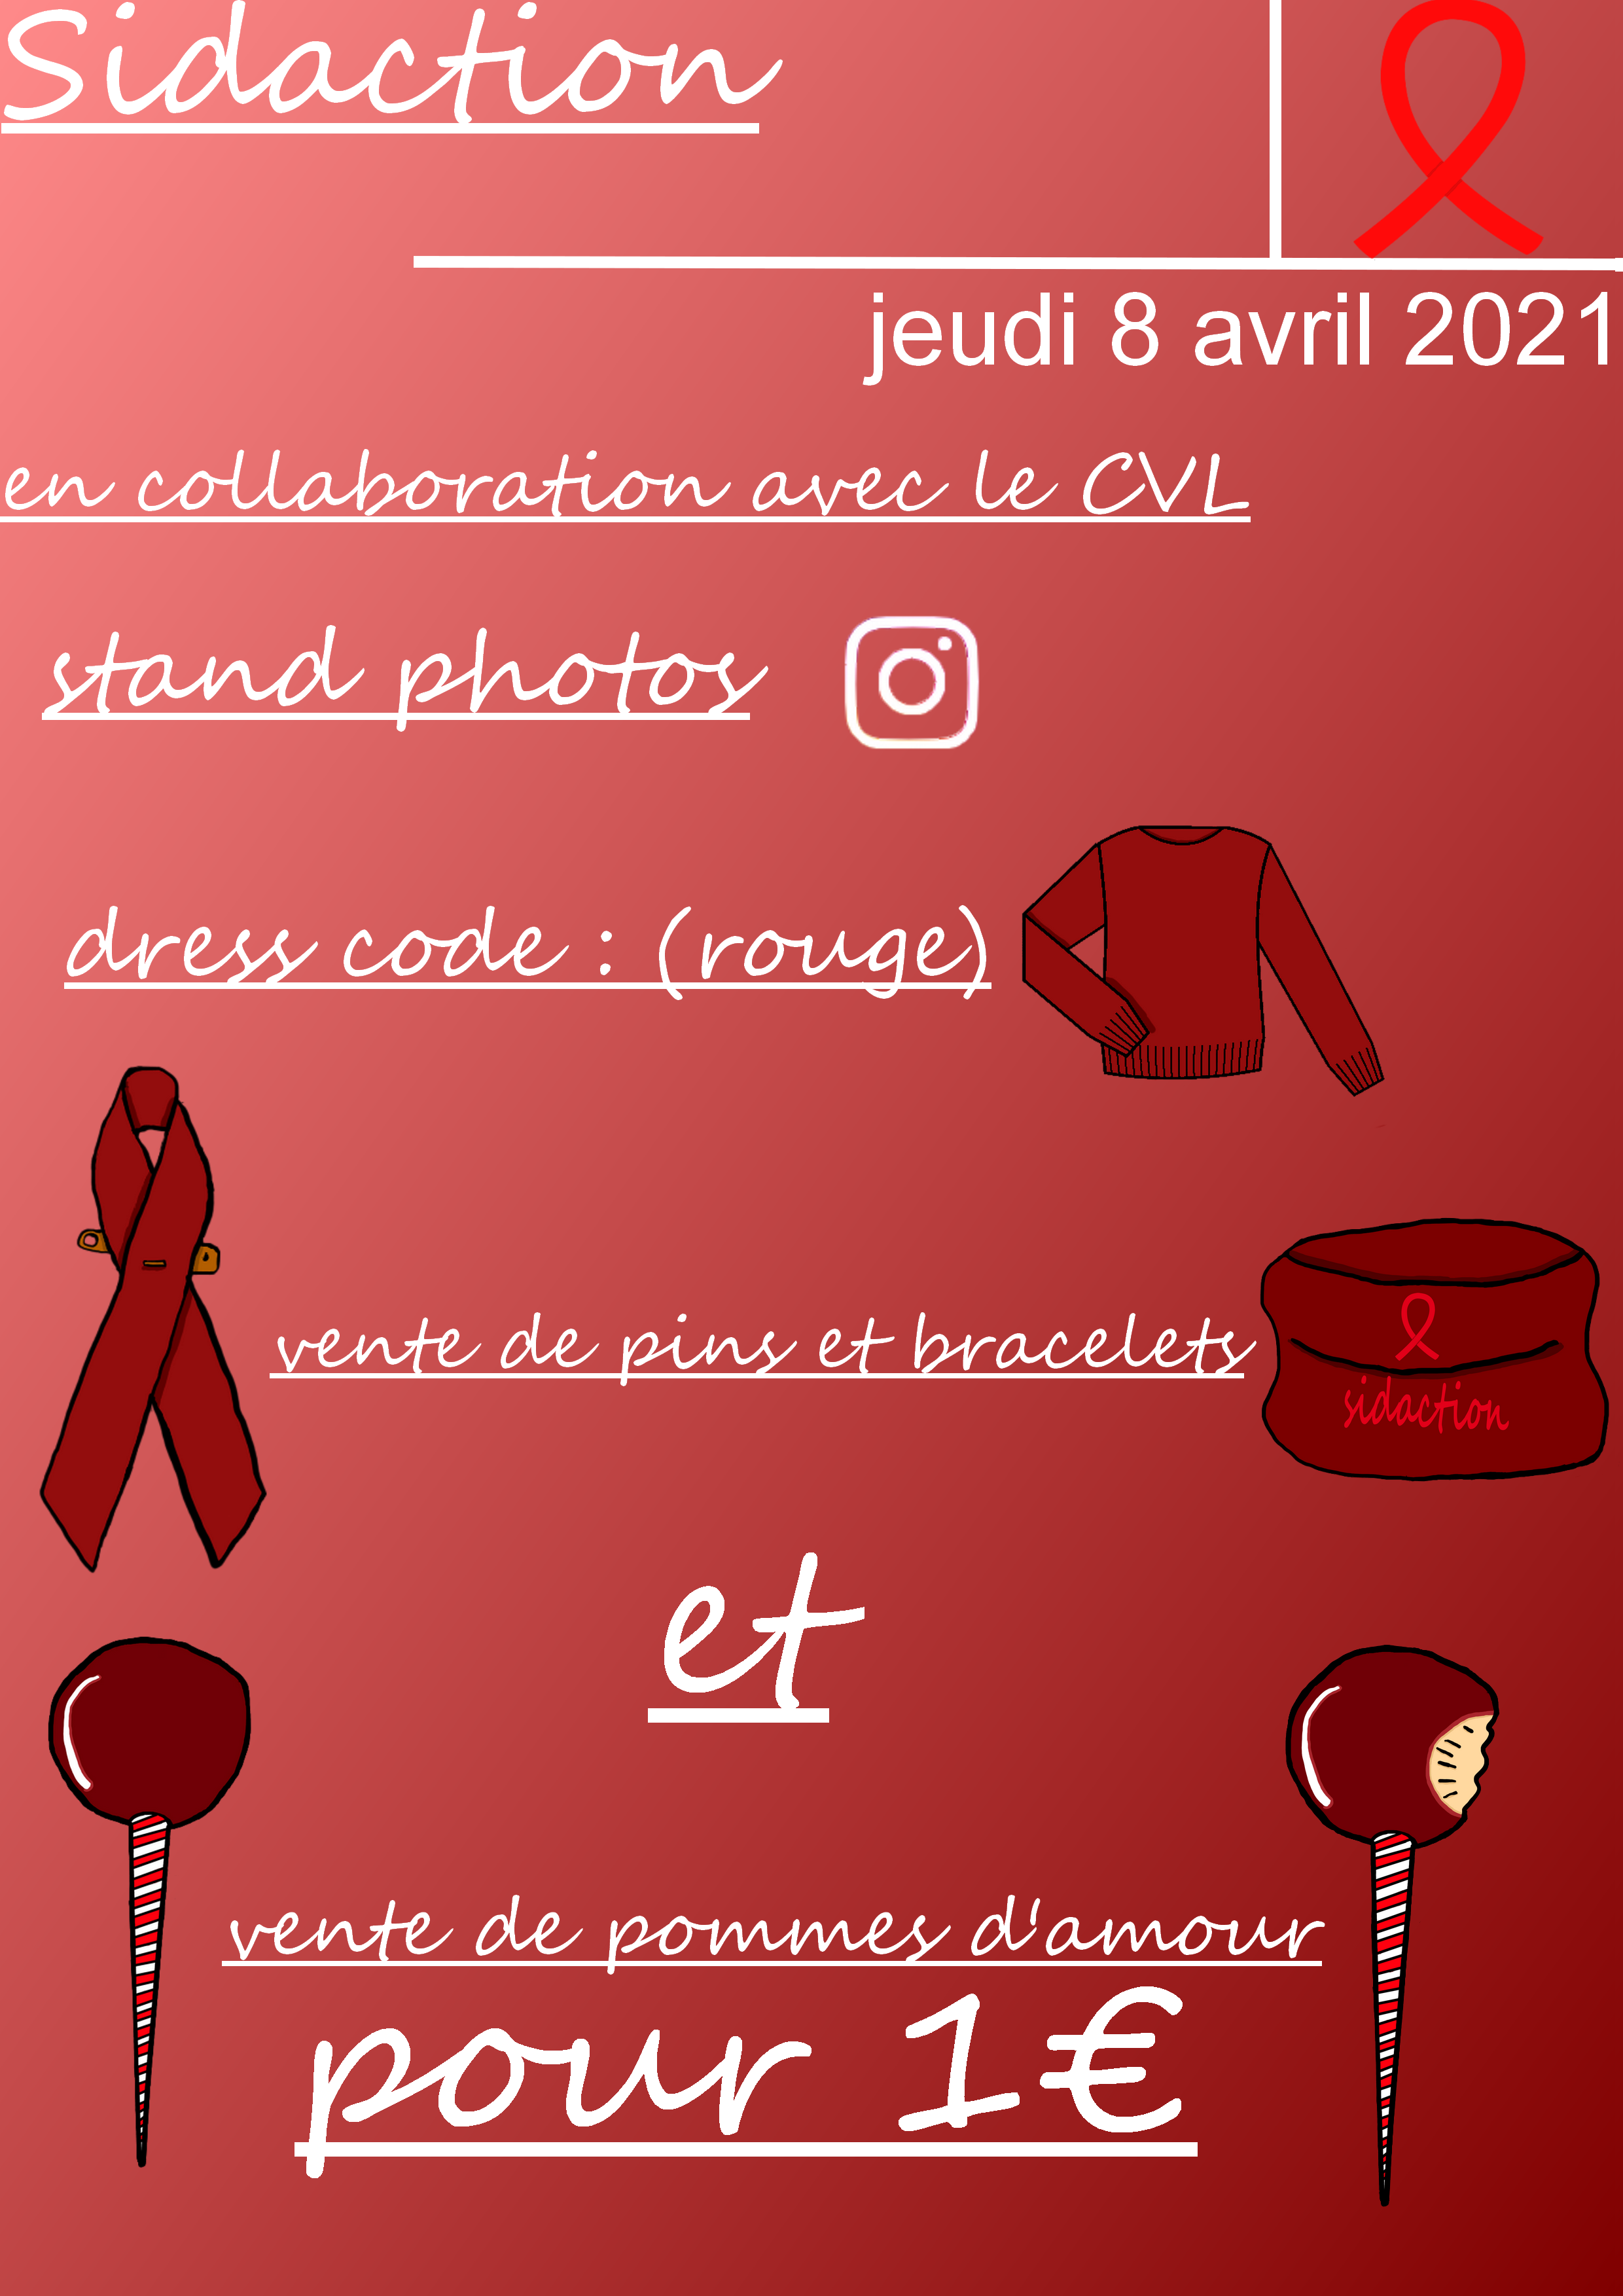 affiche sidaction 2021 format A4.png